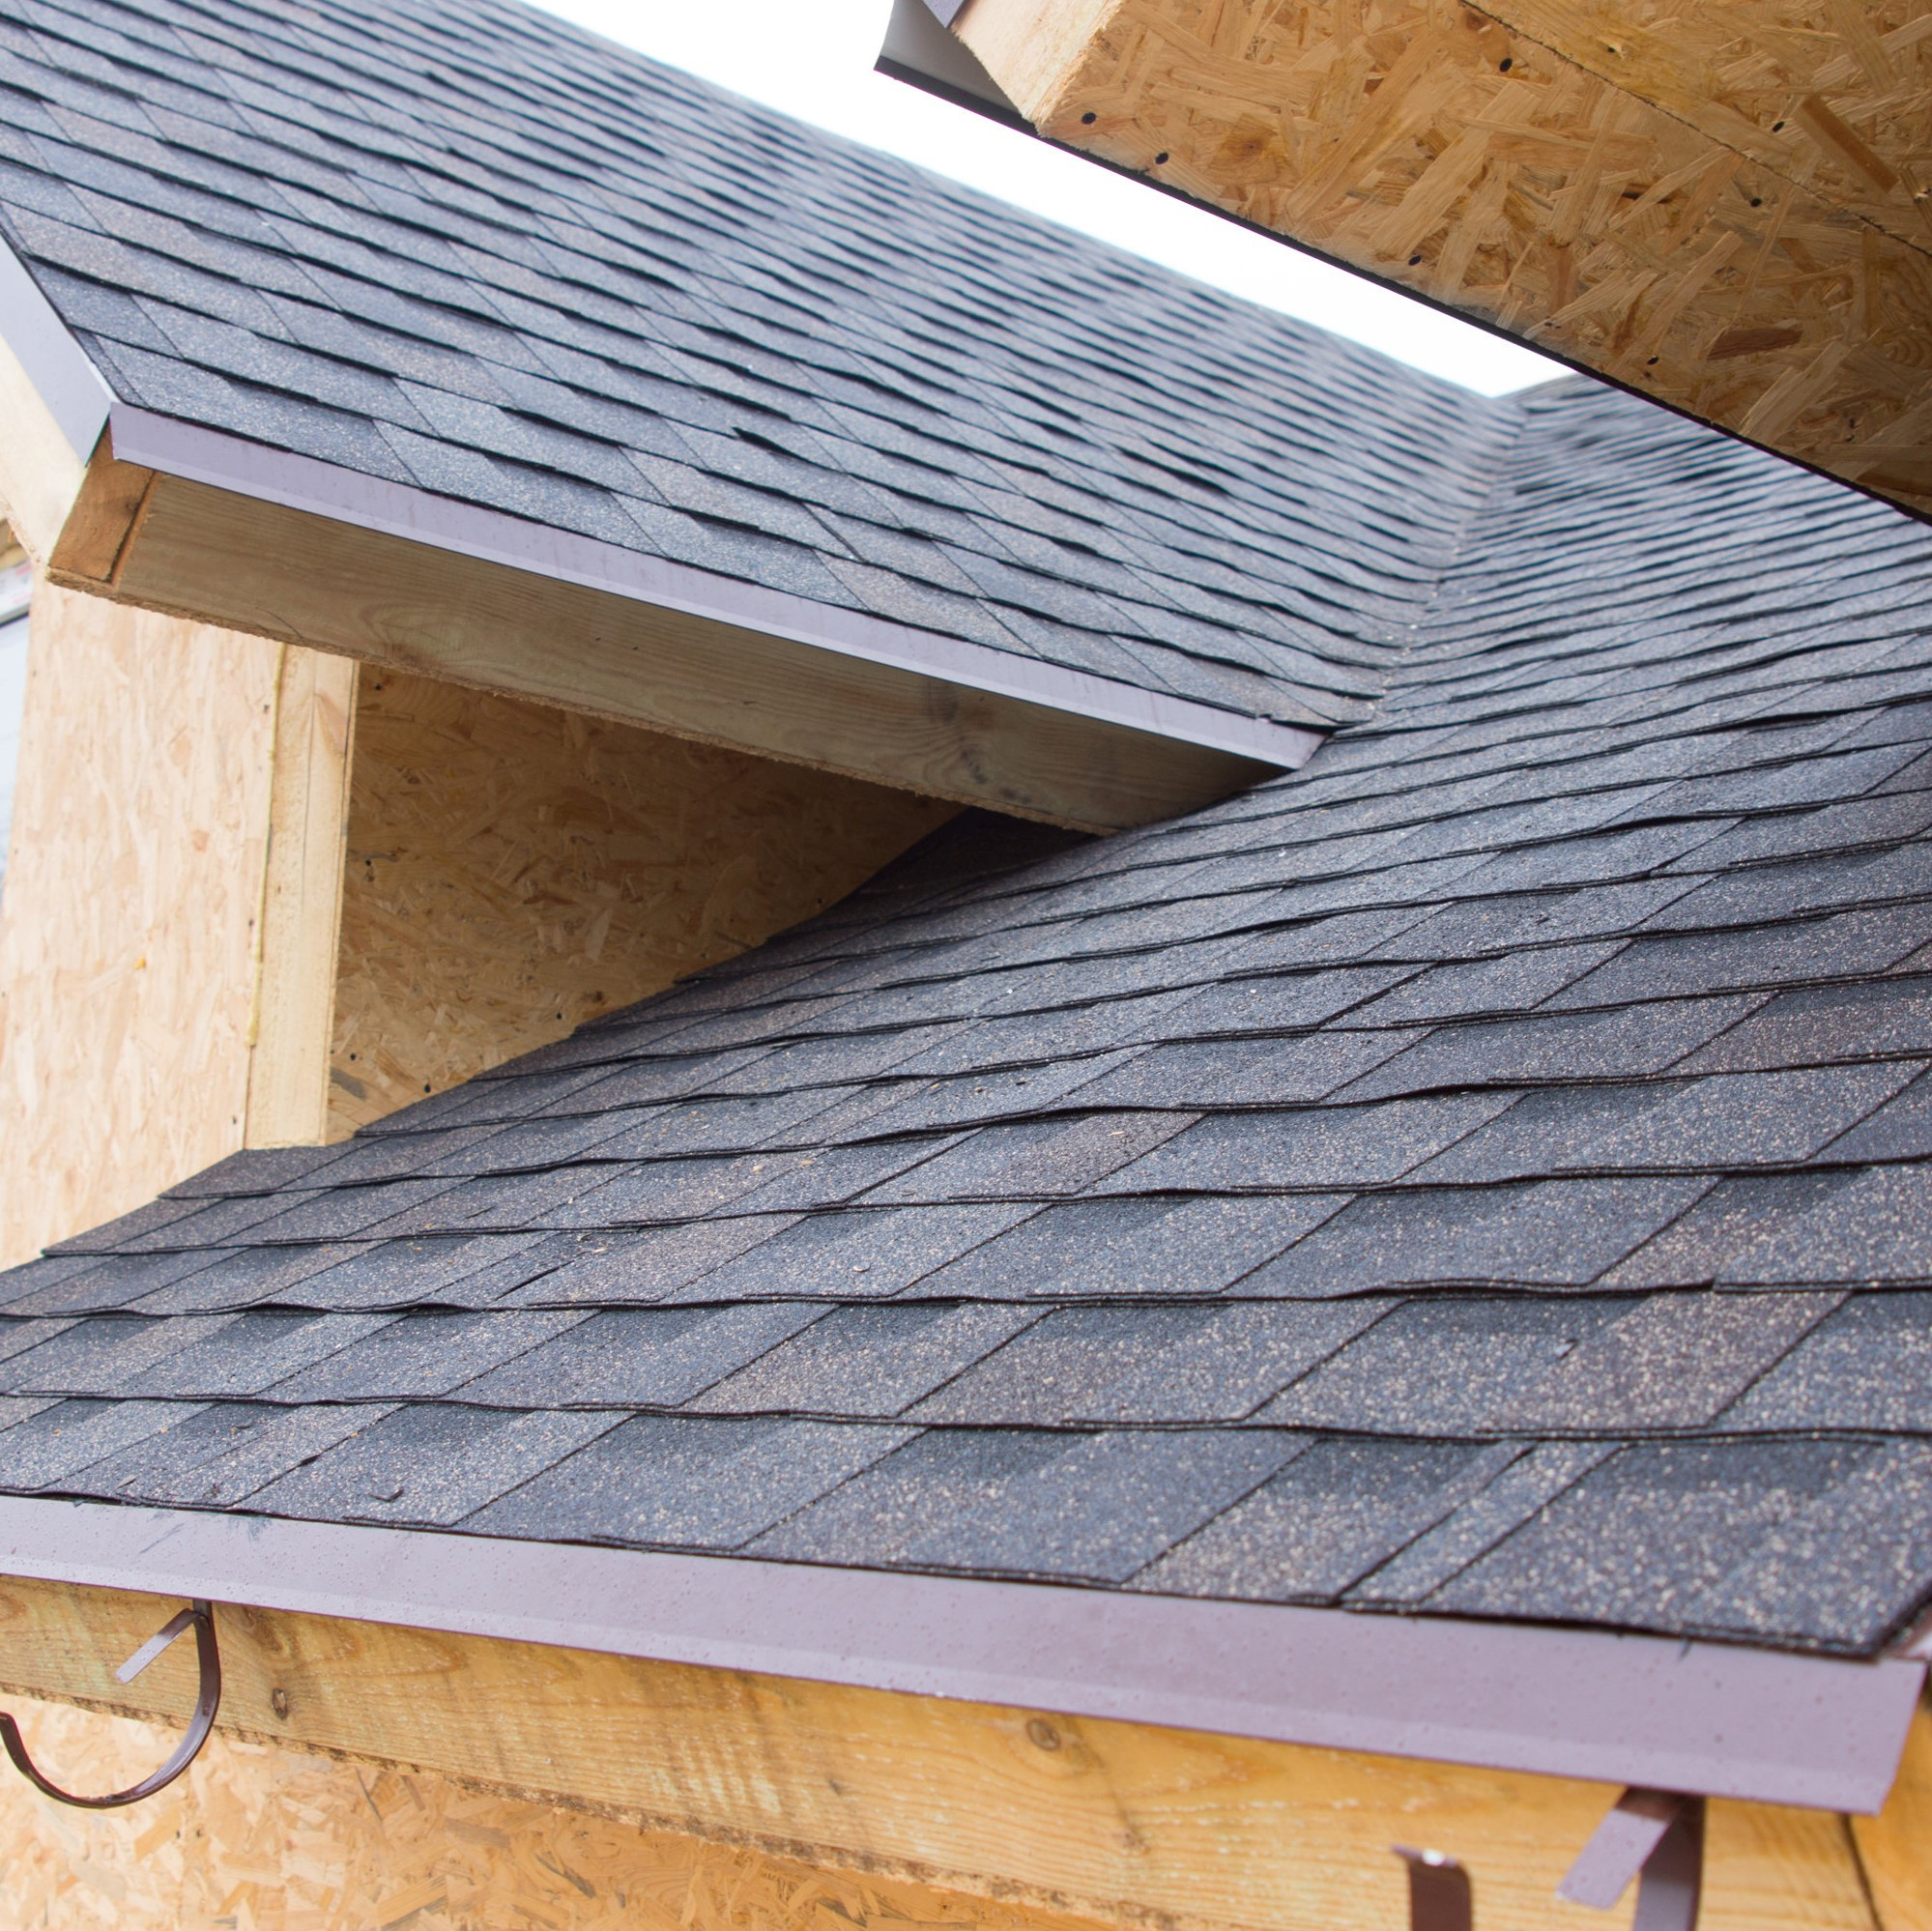 A roof with Owens Corning shingles installed on it.